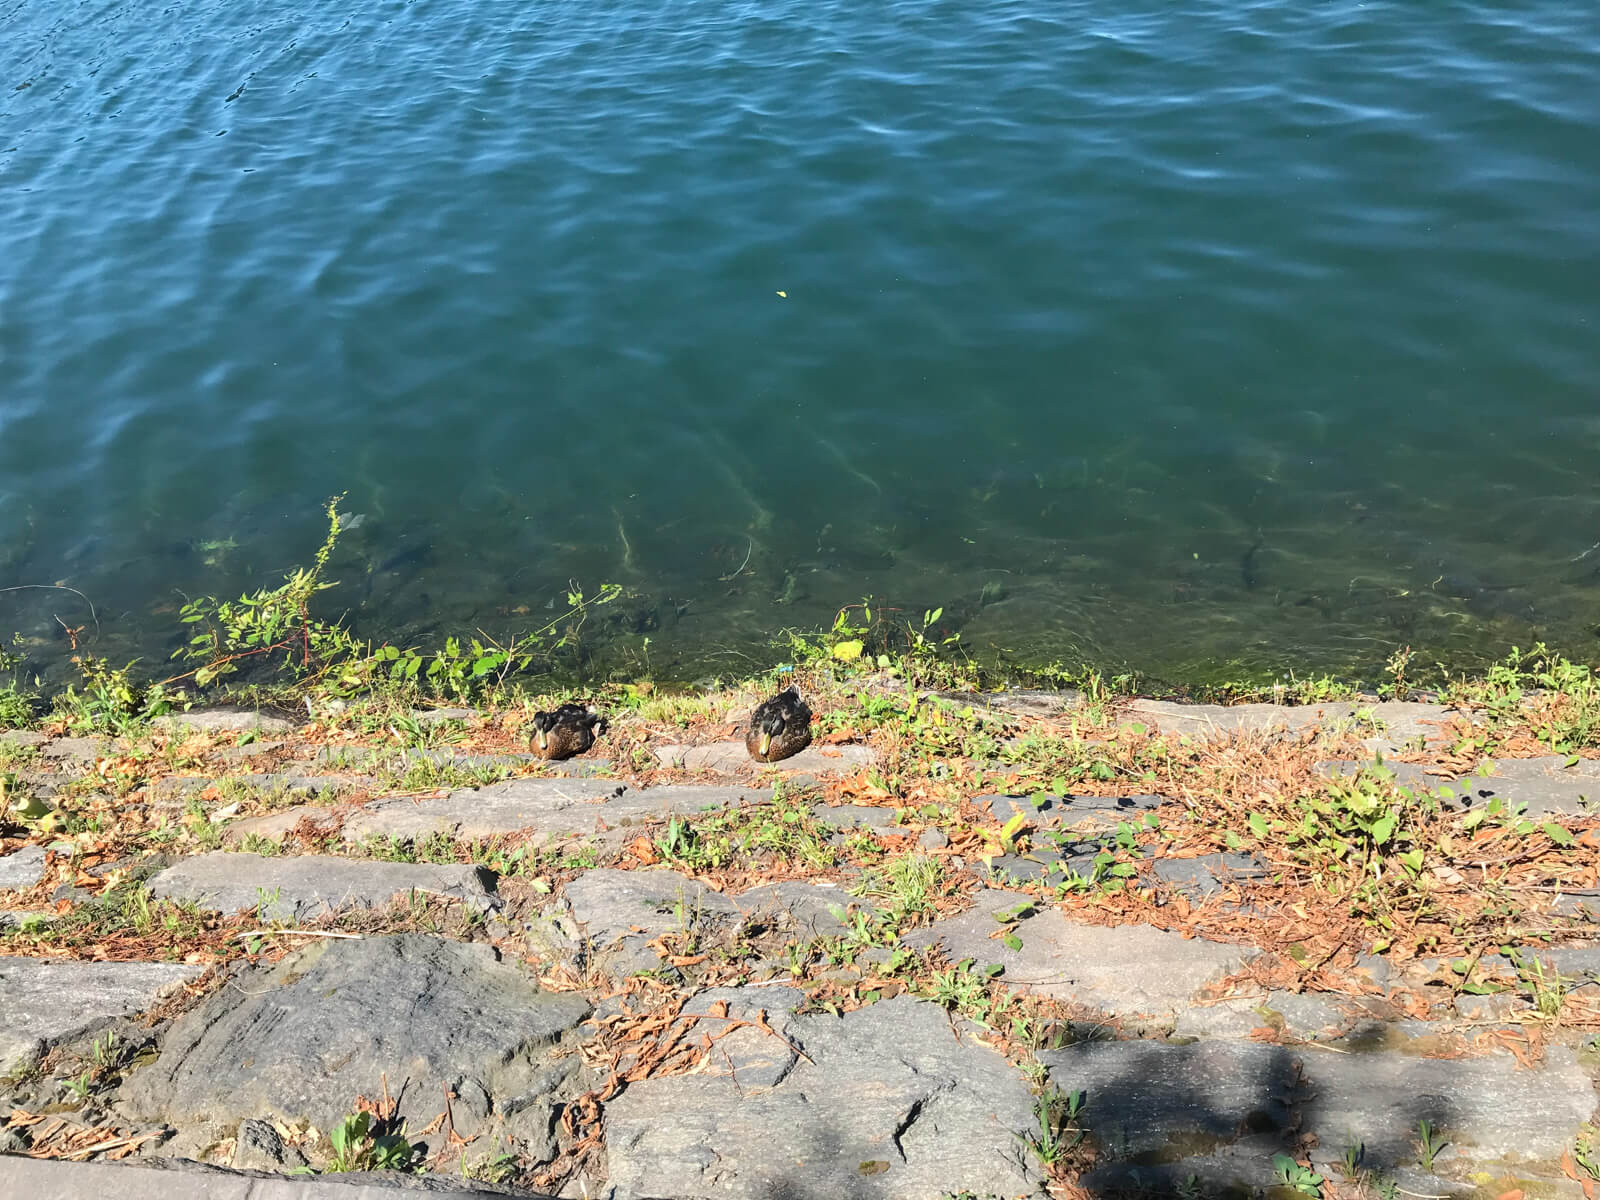 Two small ducks sitting on a rocky stone area at the edge of a body of water